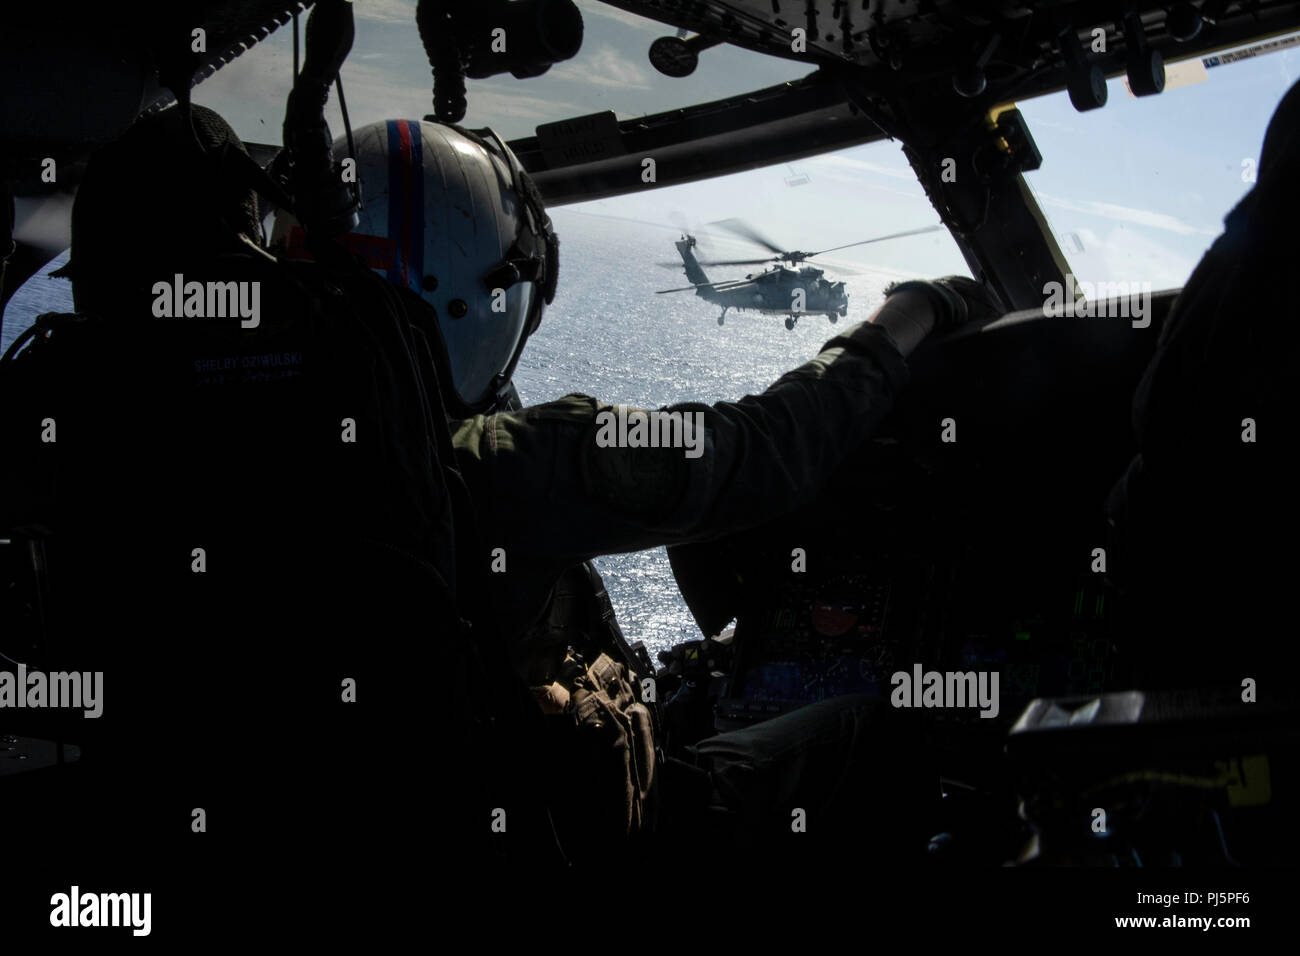 180824-N-VI515-0258  WATERS SOUTH OF JAPAN (Aug. 24, 2018) Lt. Shelby Dziwulski, from Baltimore, copilots an MH-60S Sea Hawk helicopter assigned to the Golden Eagles of Helicopter Sea Combat Squadron (HSC) 12. The squadron is embarked aboard the aircraft carrier USS Ronald Reagan (CVN 76), the flagship of Carrier Strike Group 5, which provides a combat-ready force that protects and defends the collective maritime interests of its allies and partners in the Indo-Pacific region. (U.S. Navy photo by Mass Communication Specialist 3rd Class Erwin Jacob V. Miciano/Released) Stock Photo